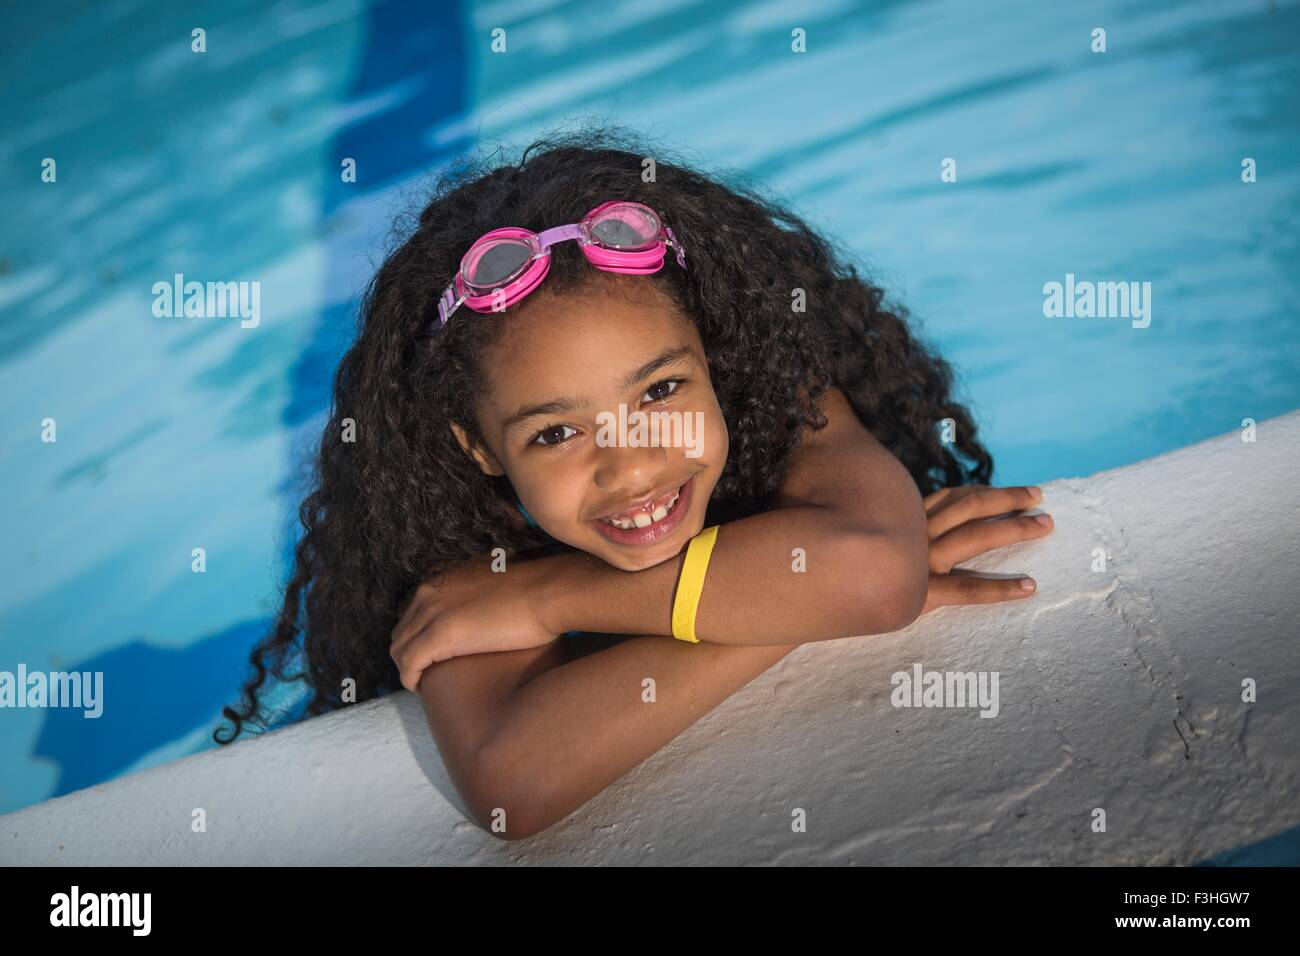 Portrait of girl with curly black hair hanging on edge of swimming pool, looking at camera smiling - Stock Image